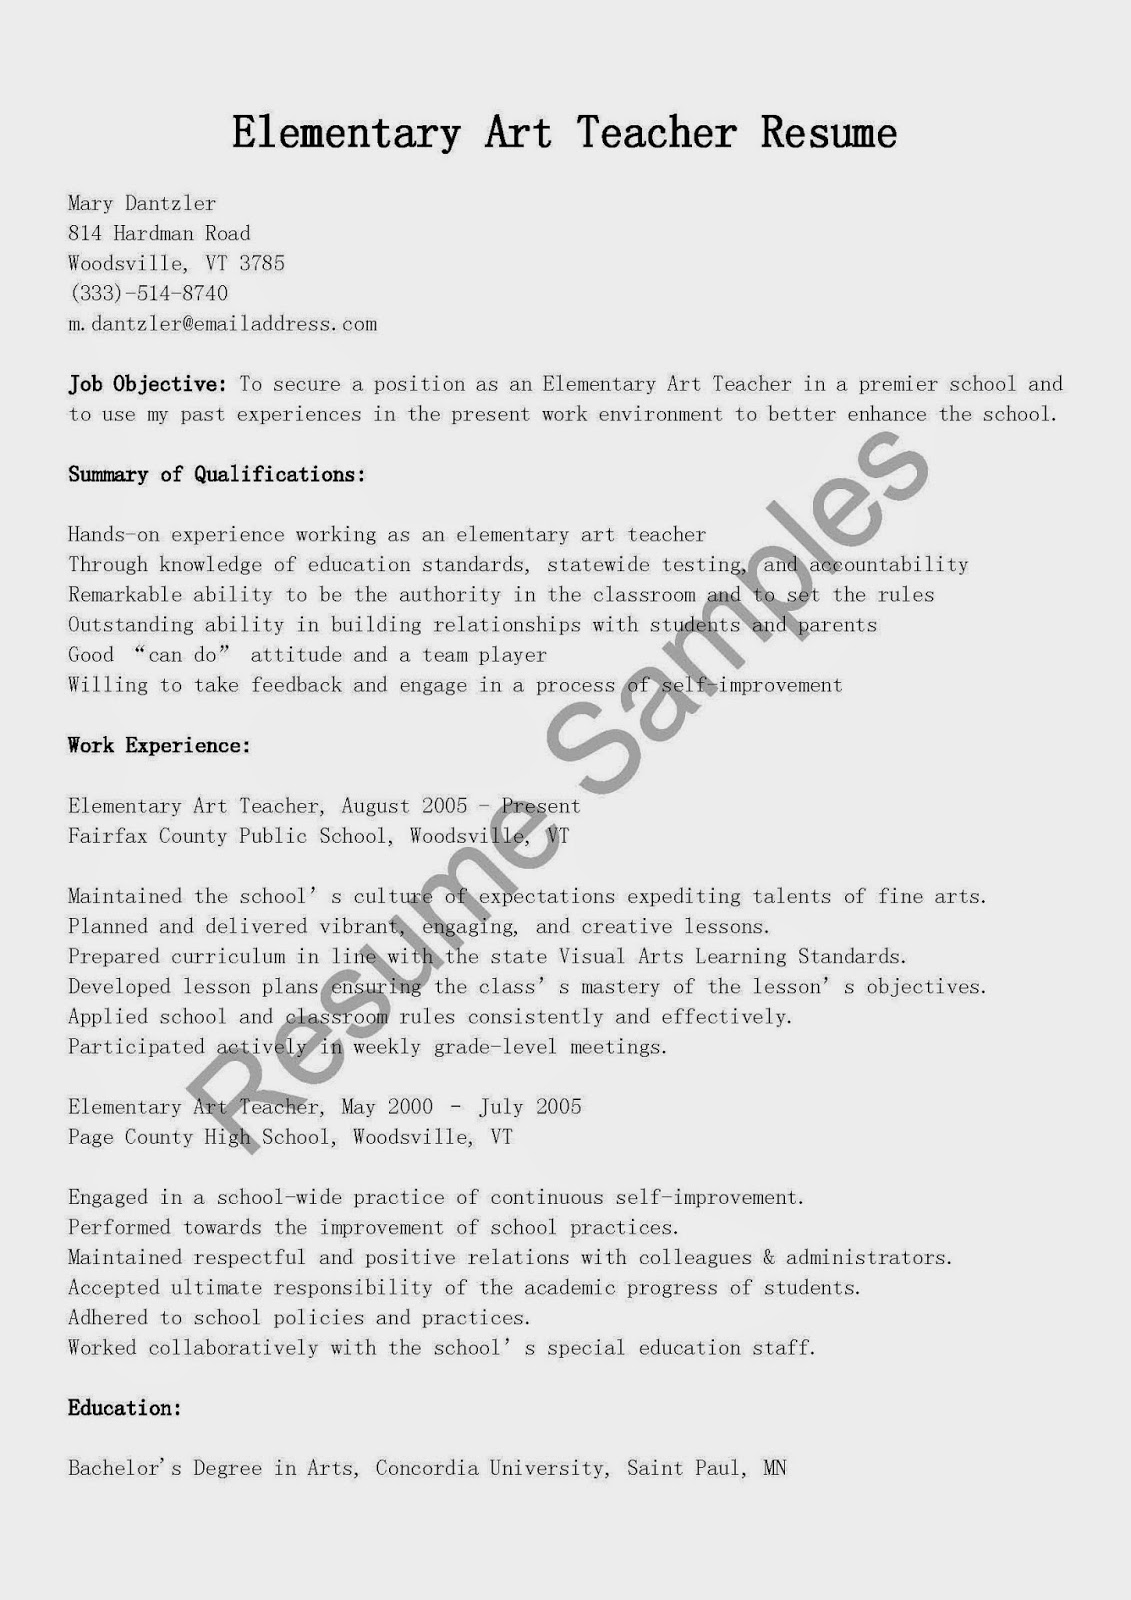 Elementary teacher resumes novasatfm education quickstart resume templates elementary teacher resumes madrichimfo Gallery